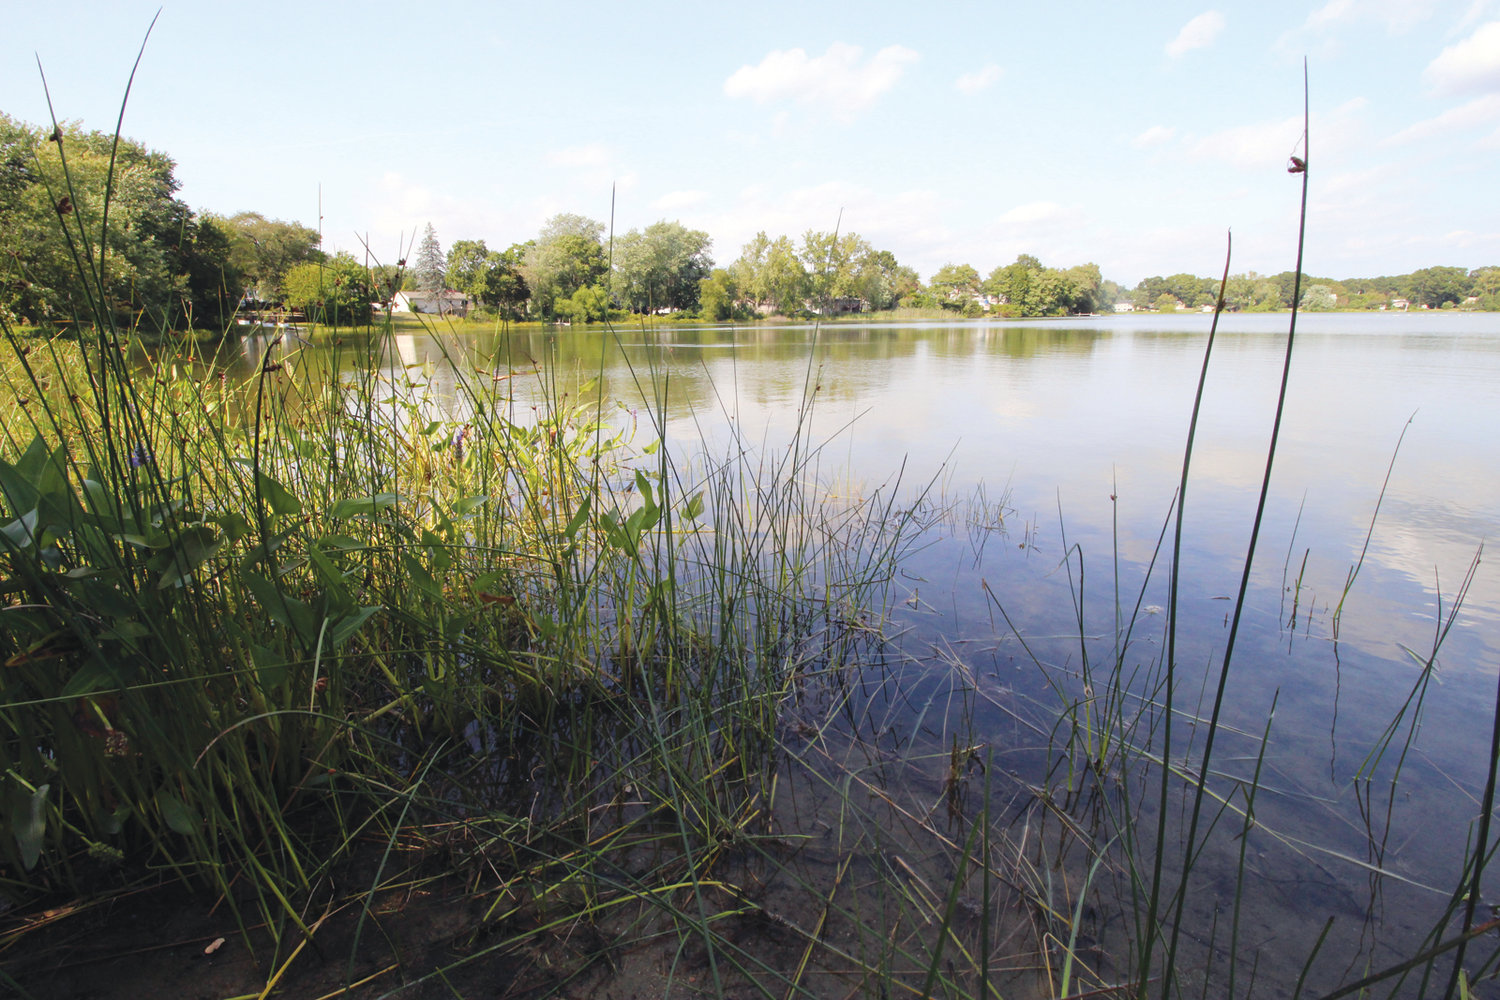 HIDDEN DANGER: It may look idyllic, but the possible health issues you could encounter from swimming in an algae bloom are anything but. Little Pond in Warwick is the most recent water body to warrant an advisory from DEM regarding the harmful bacteria.